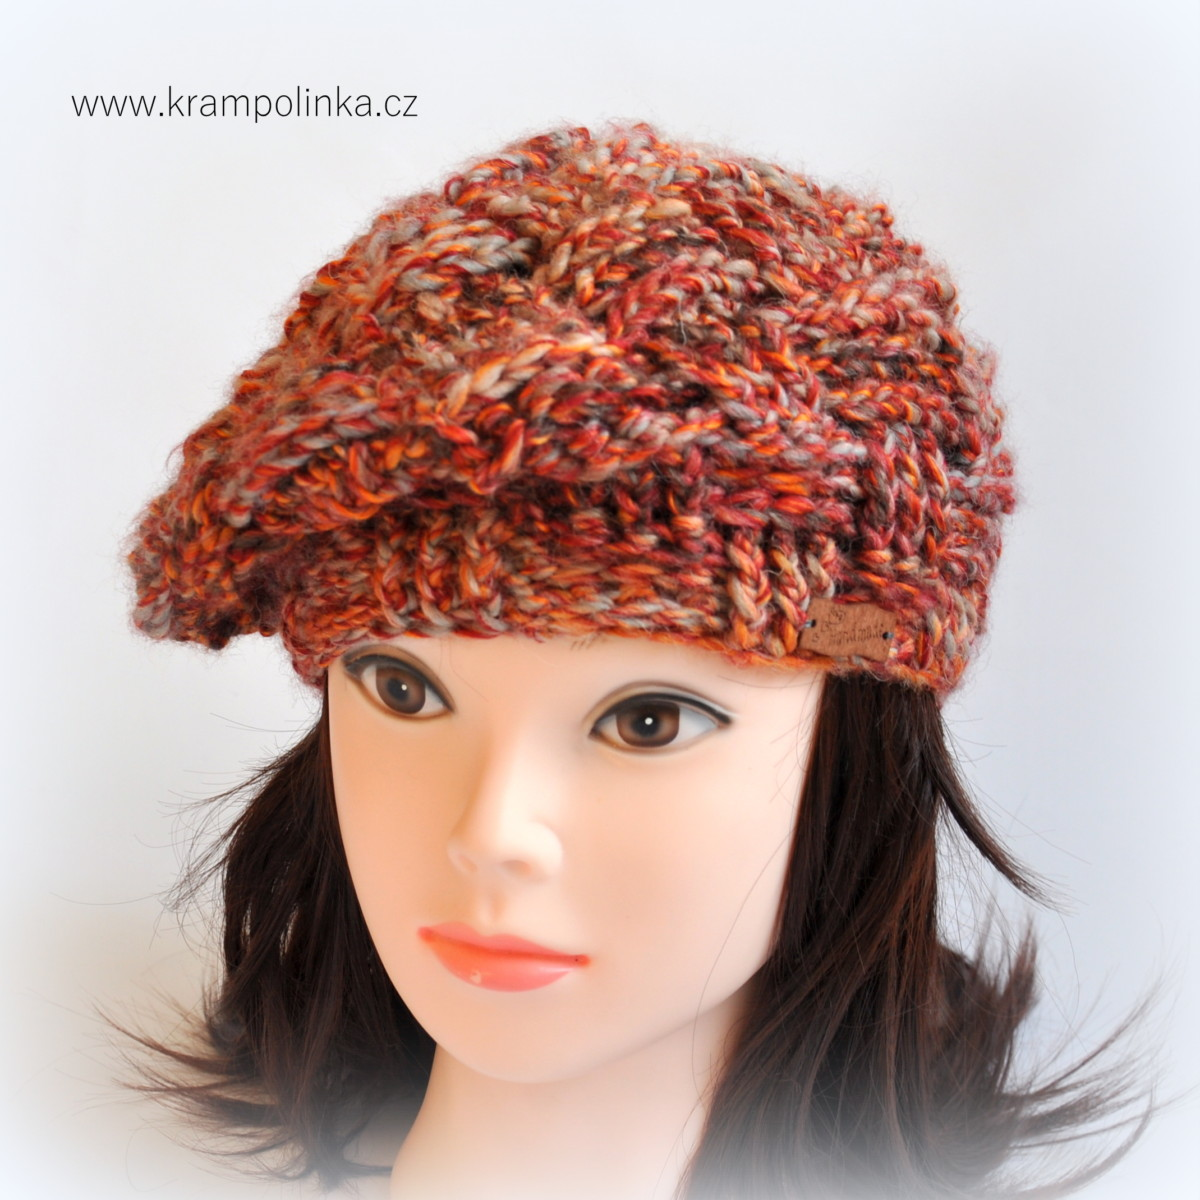 Crochet Beret from Elian Comfort wool